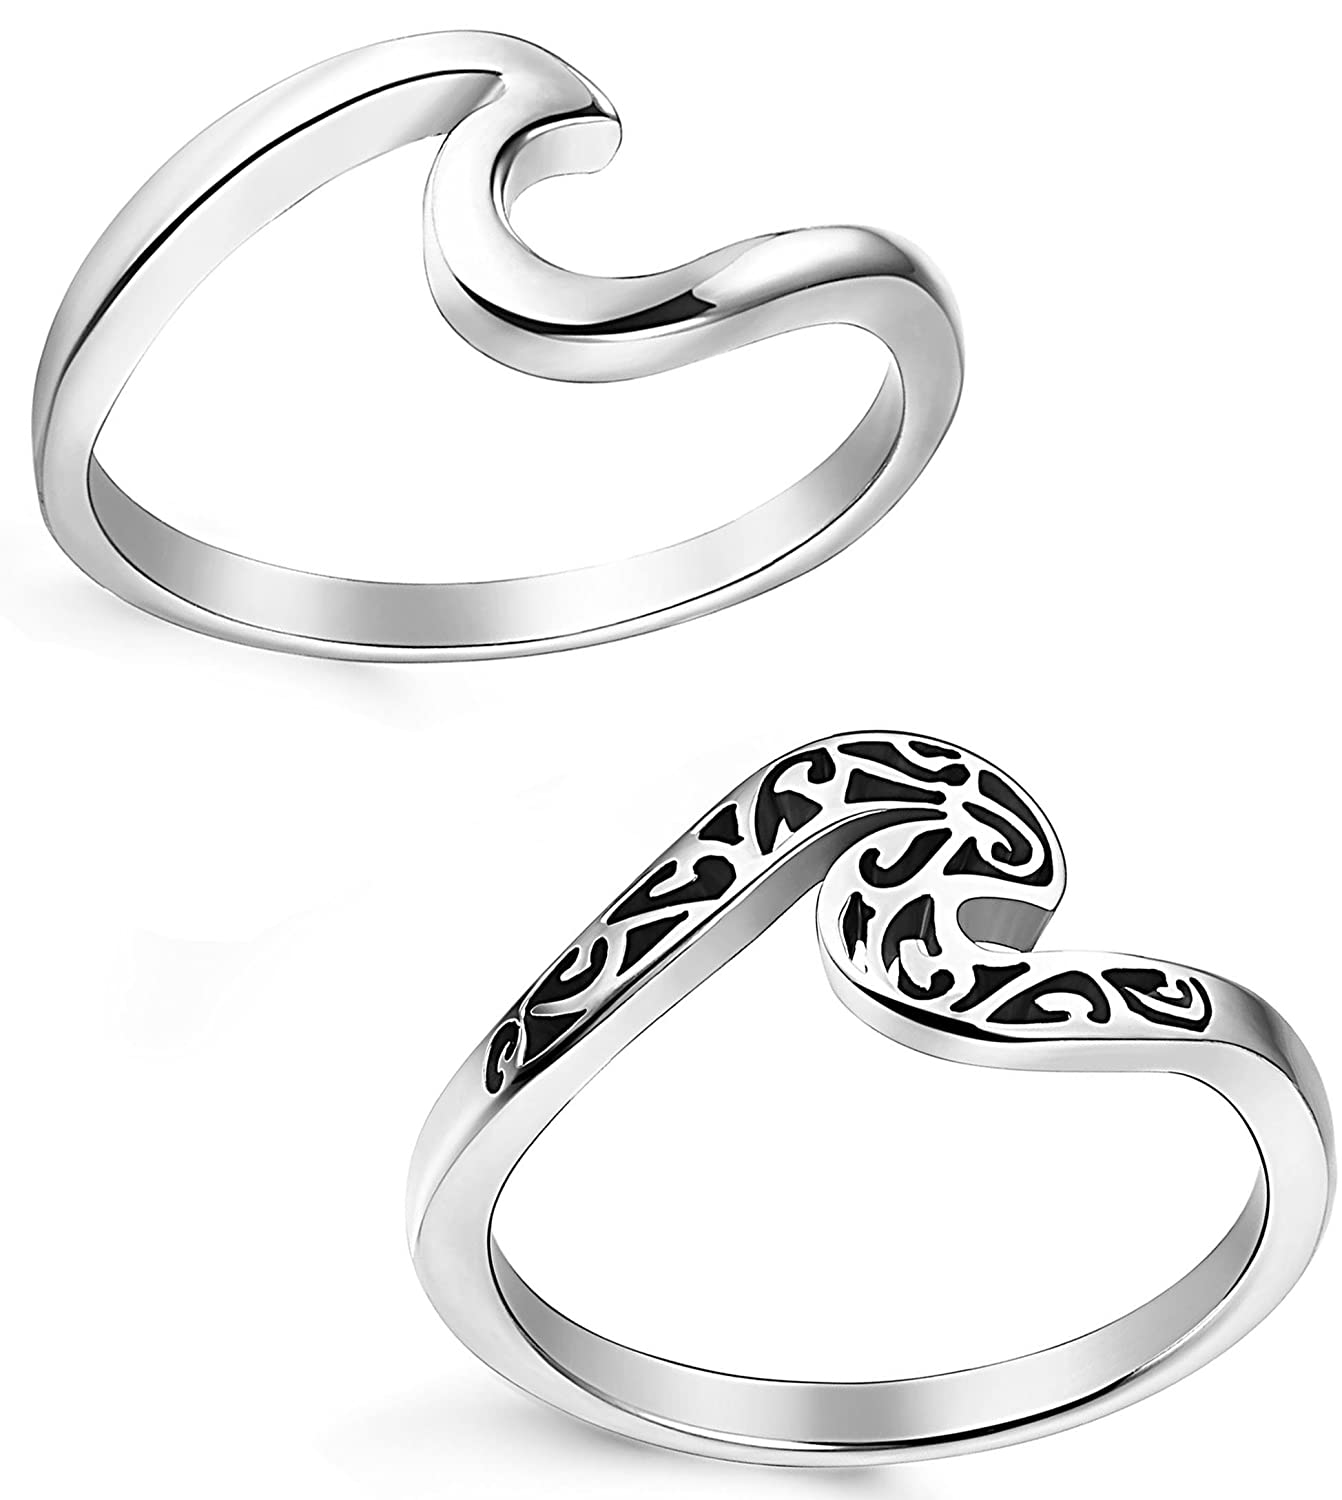 LOLIAS 2 Pcs Stainless Steel Rings for Women Girls Cute Wave Ring,Size 5-11 2JZ-WAVE-2P